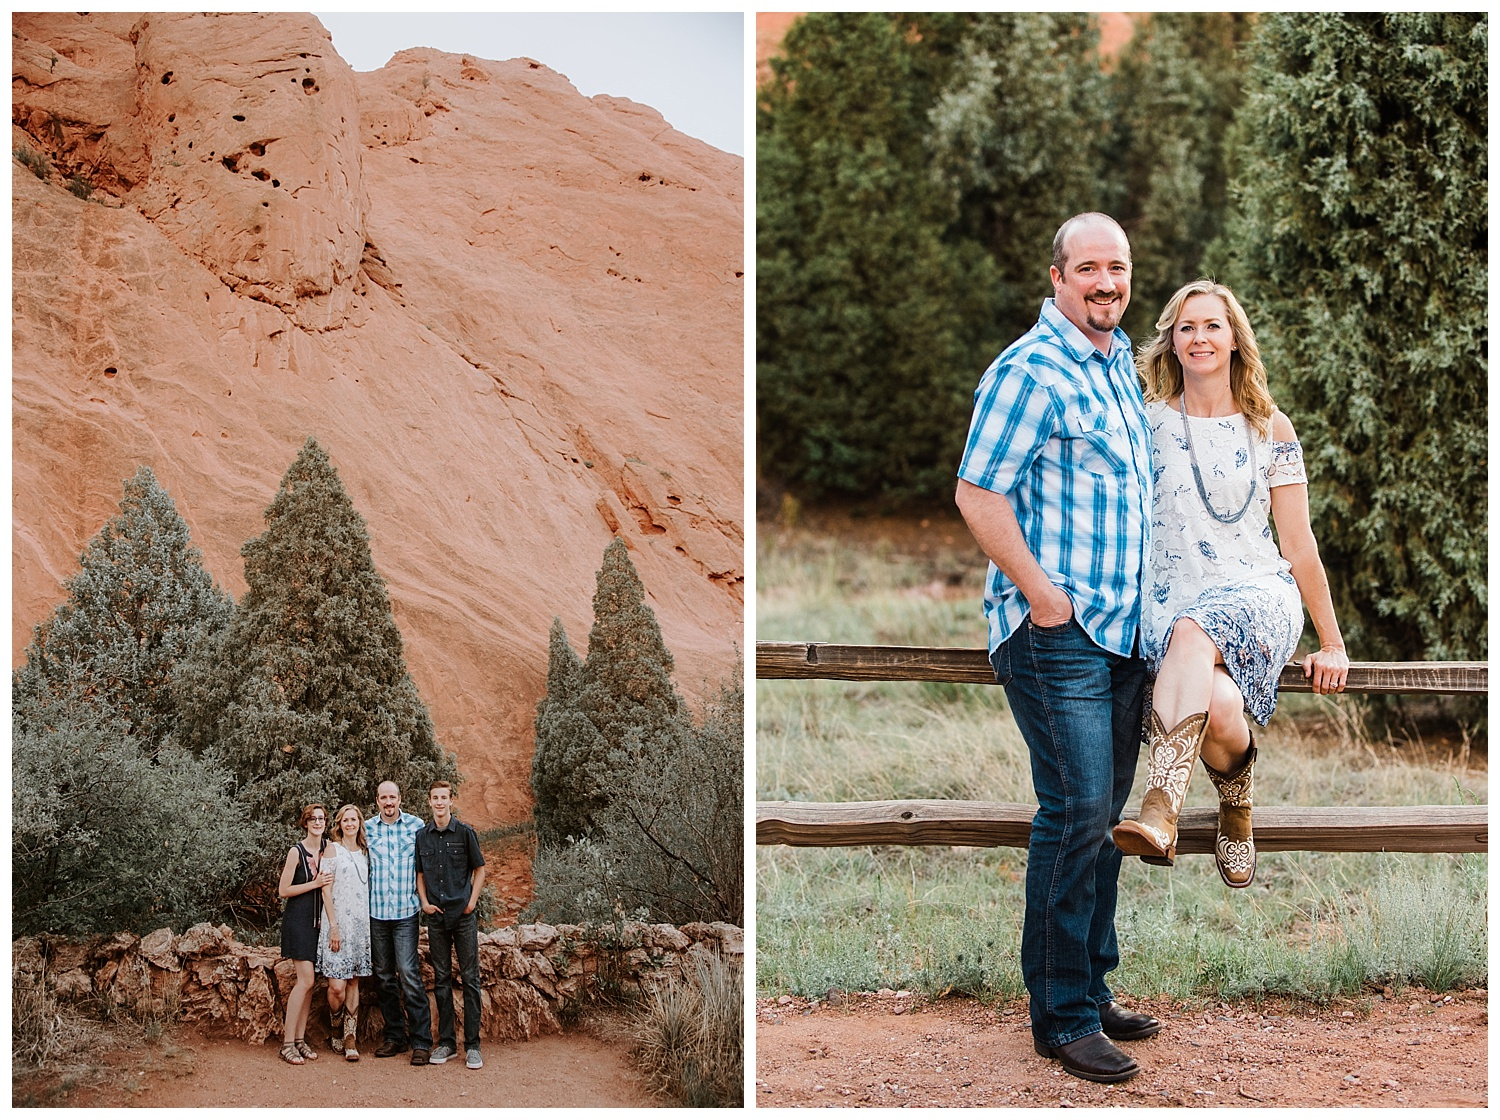 Garden_of_the_Gods_Engagement_Session_Colorado_Springs_Apollo_Fields_07.jpg